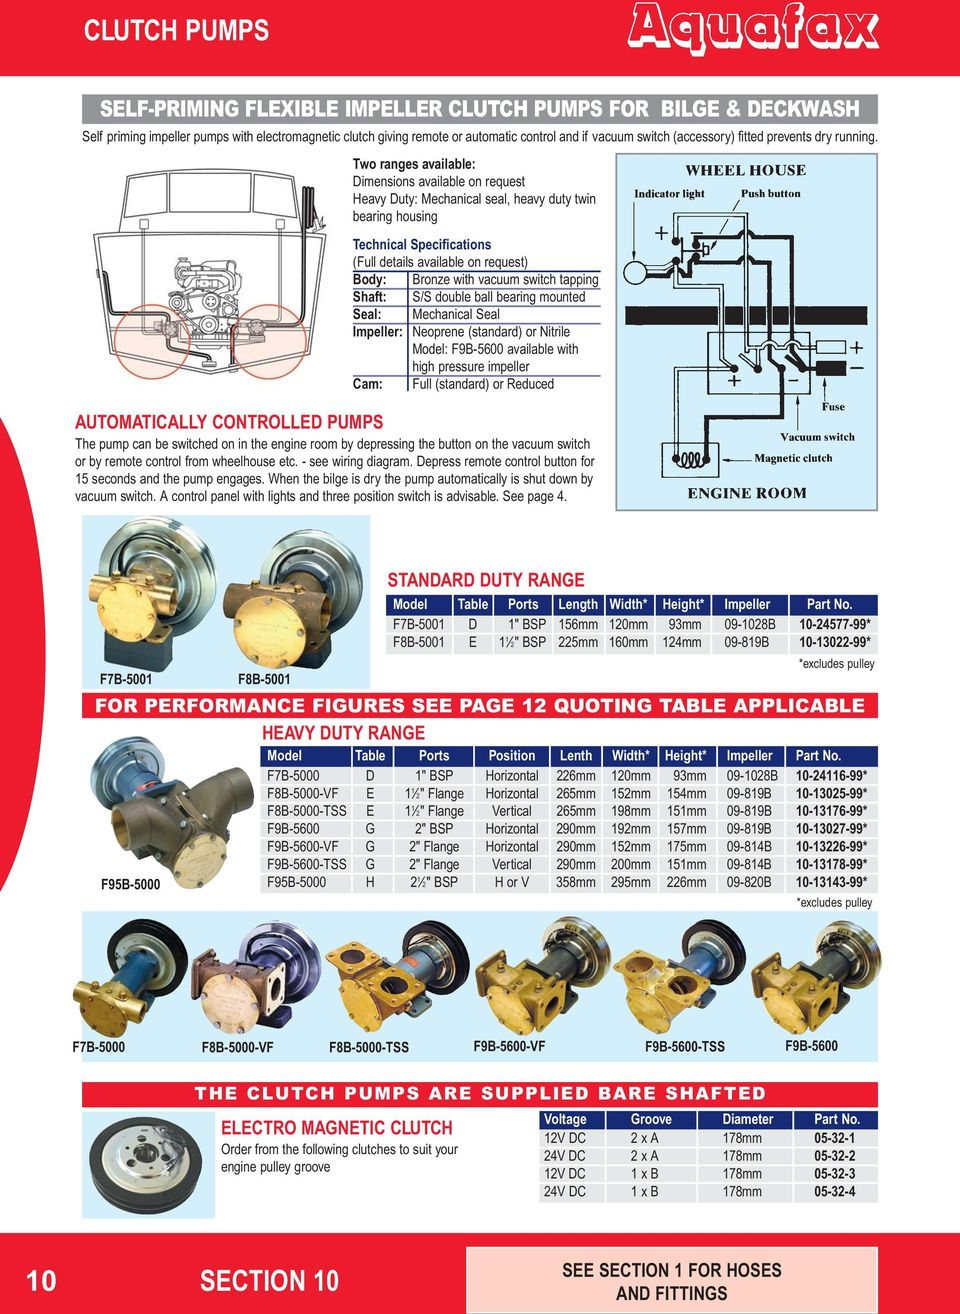 Johnson Pump Section 10 1 Catalogue J Pdf Jabsco Wiring Diagrams Two Ranges Available Dimensions On Request Heavy Duty Mechanical Seal